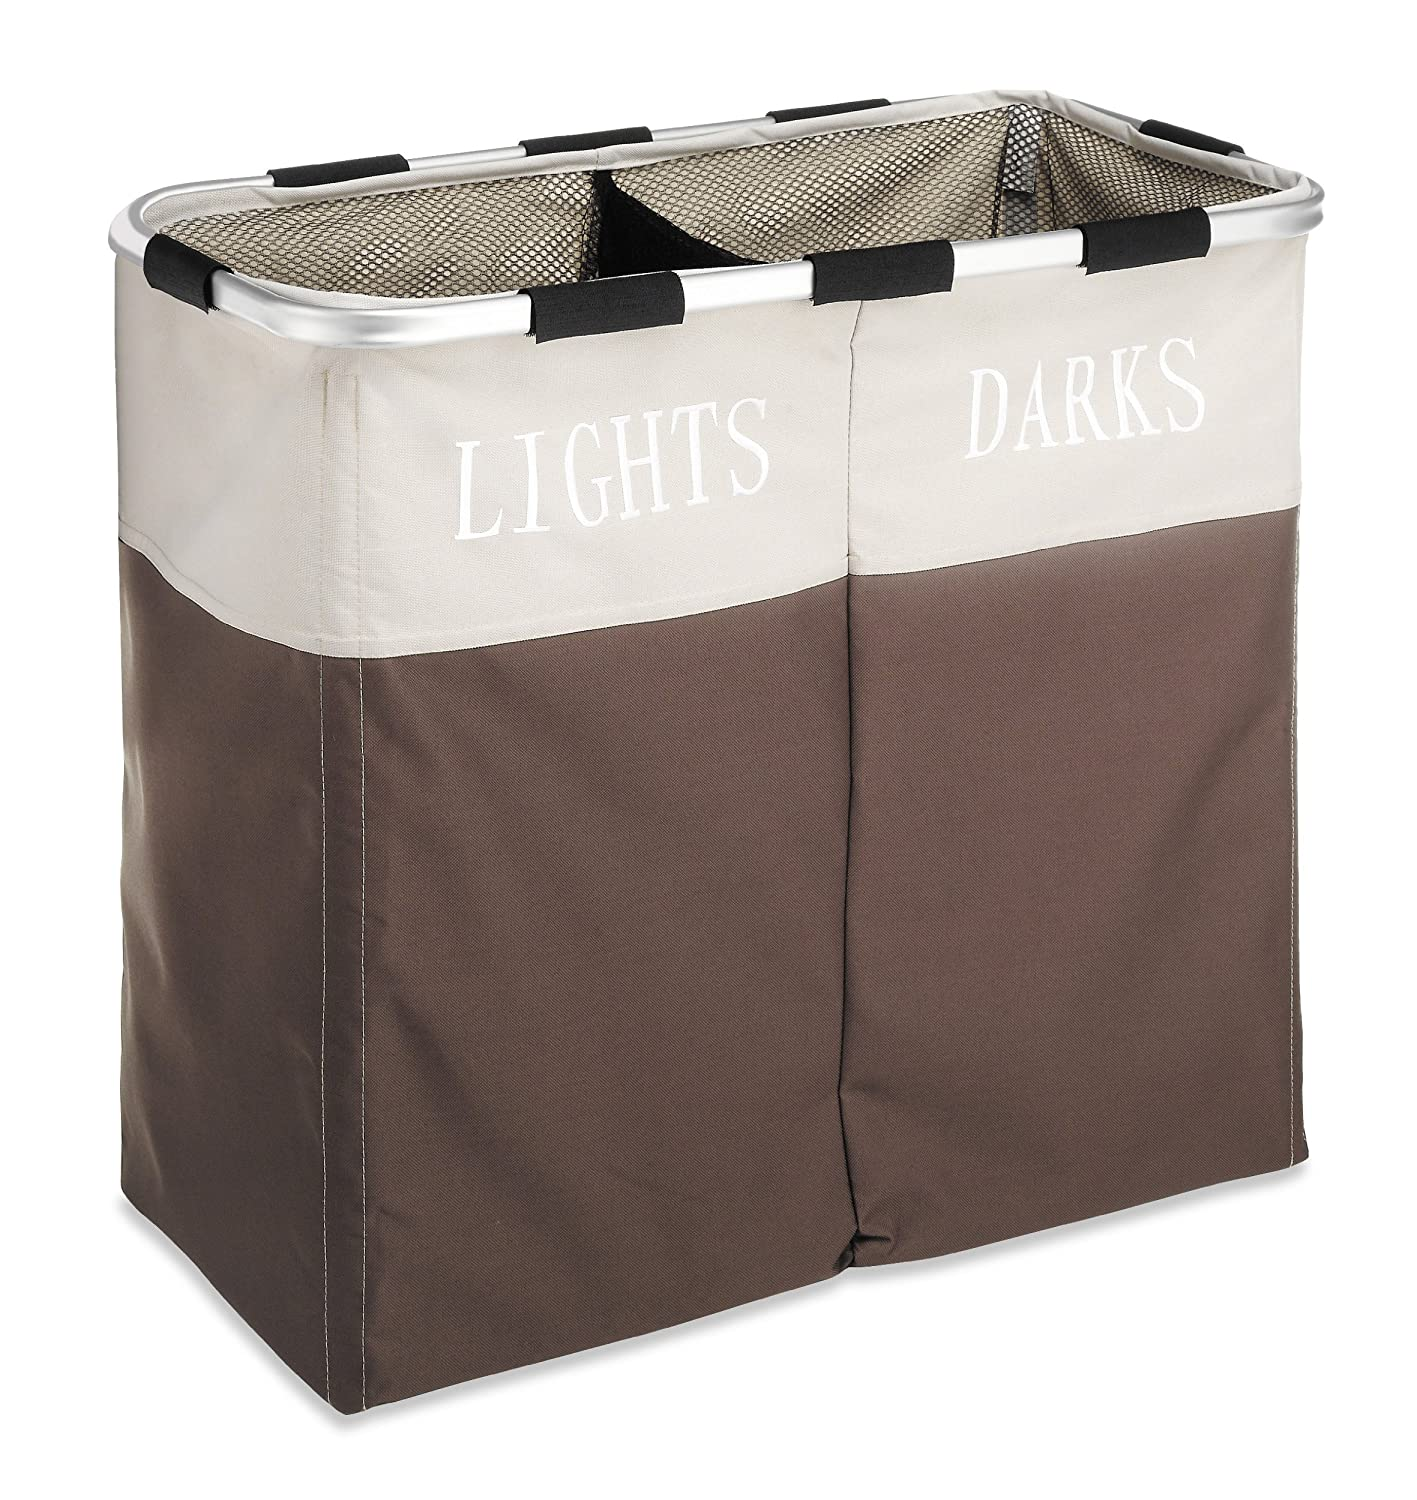 Top 10 Hampers Laundry Sorters Grace Brooke Llc Laundry Hampers · Laundry  Hamper Made Of Bamboo Laundry Hampers